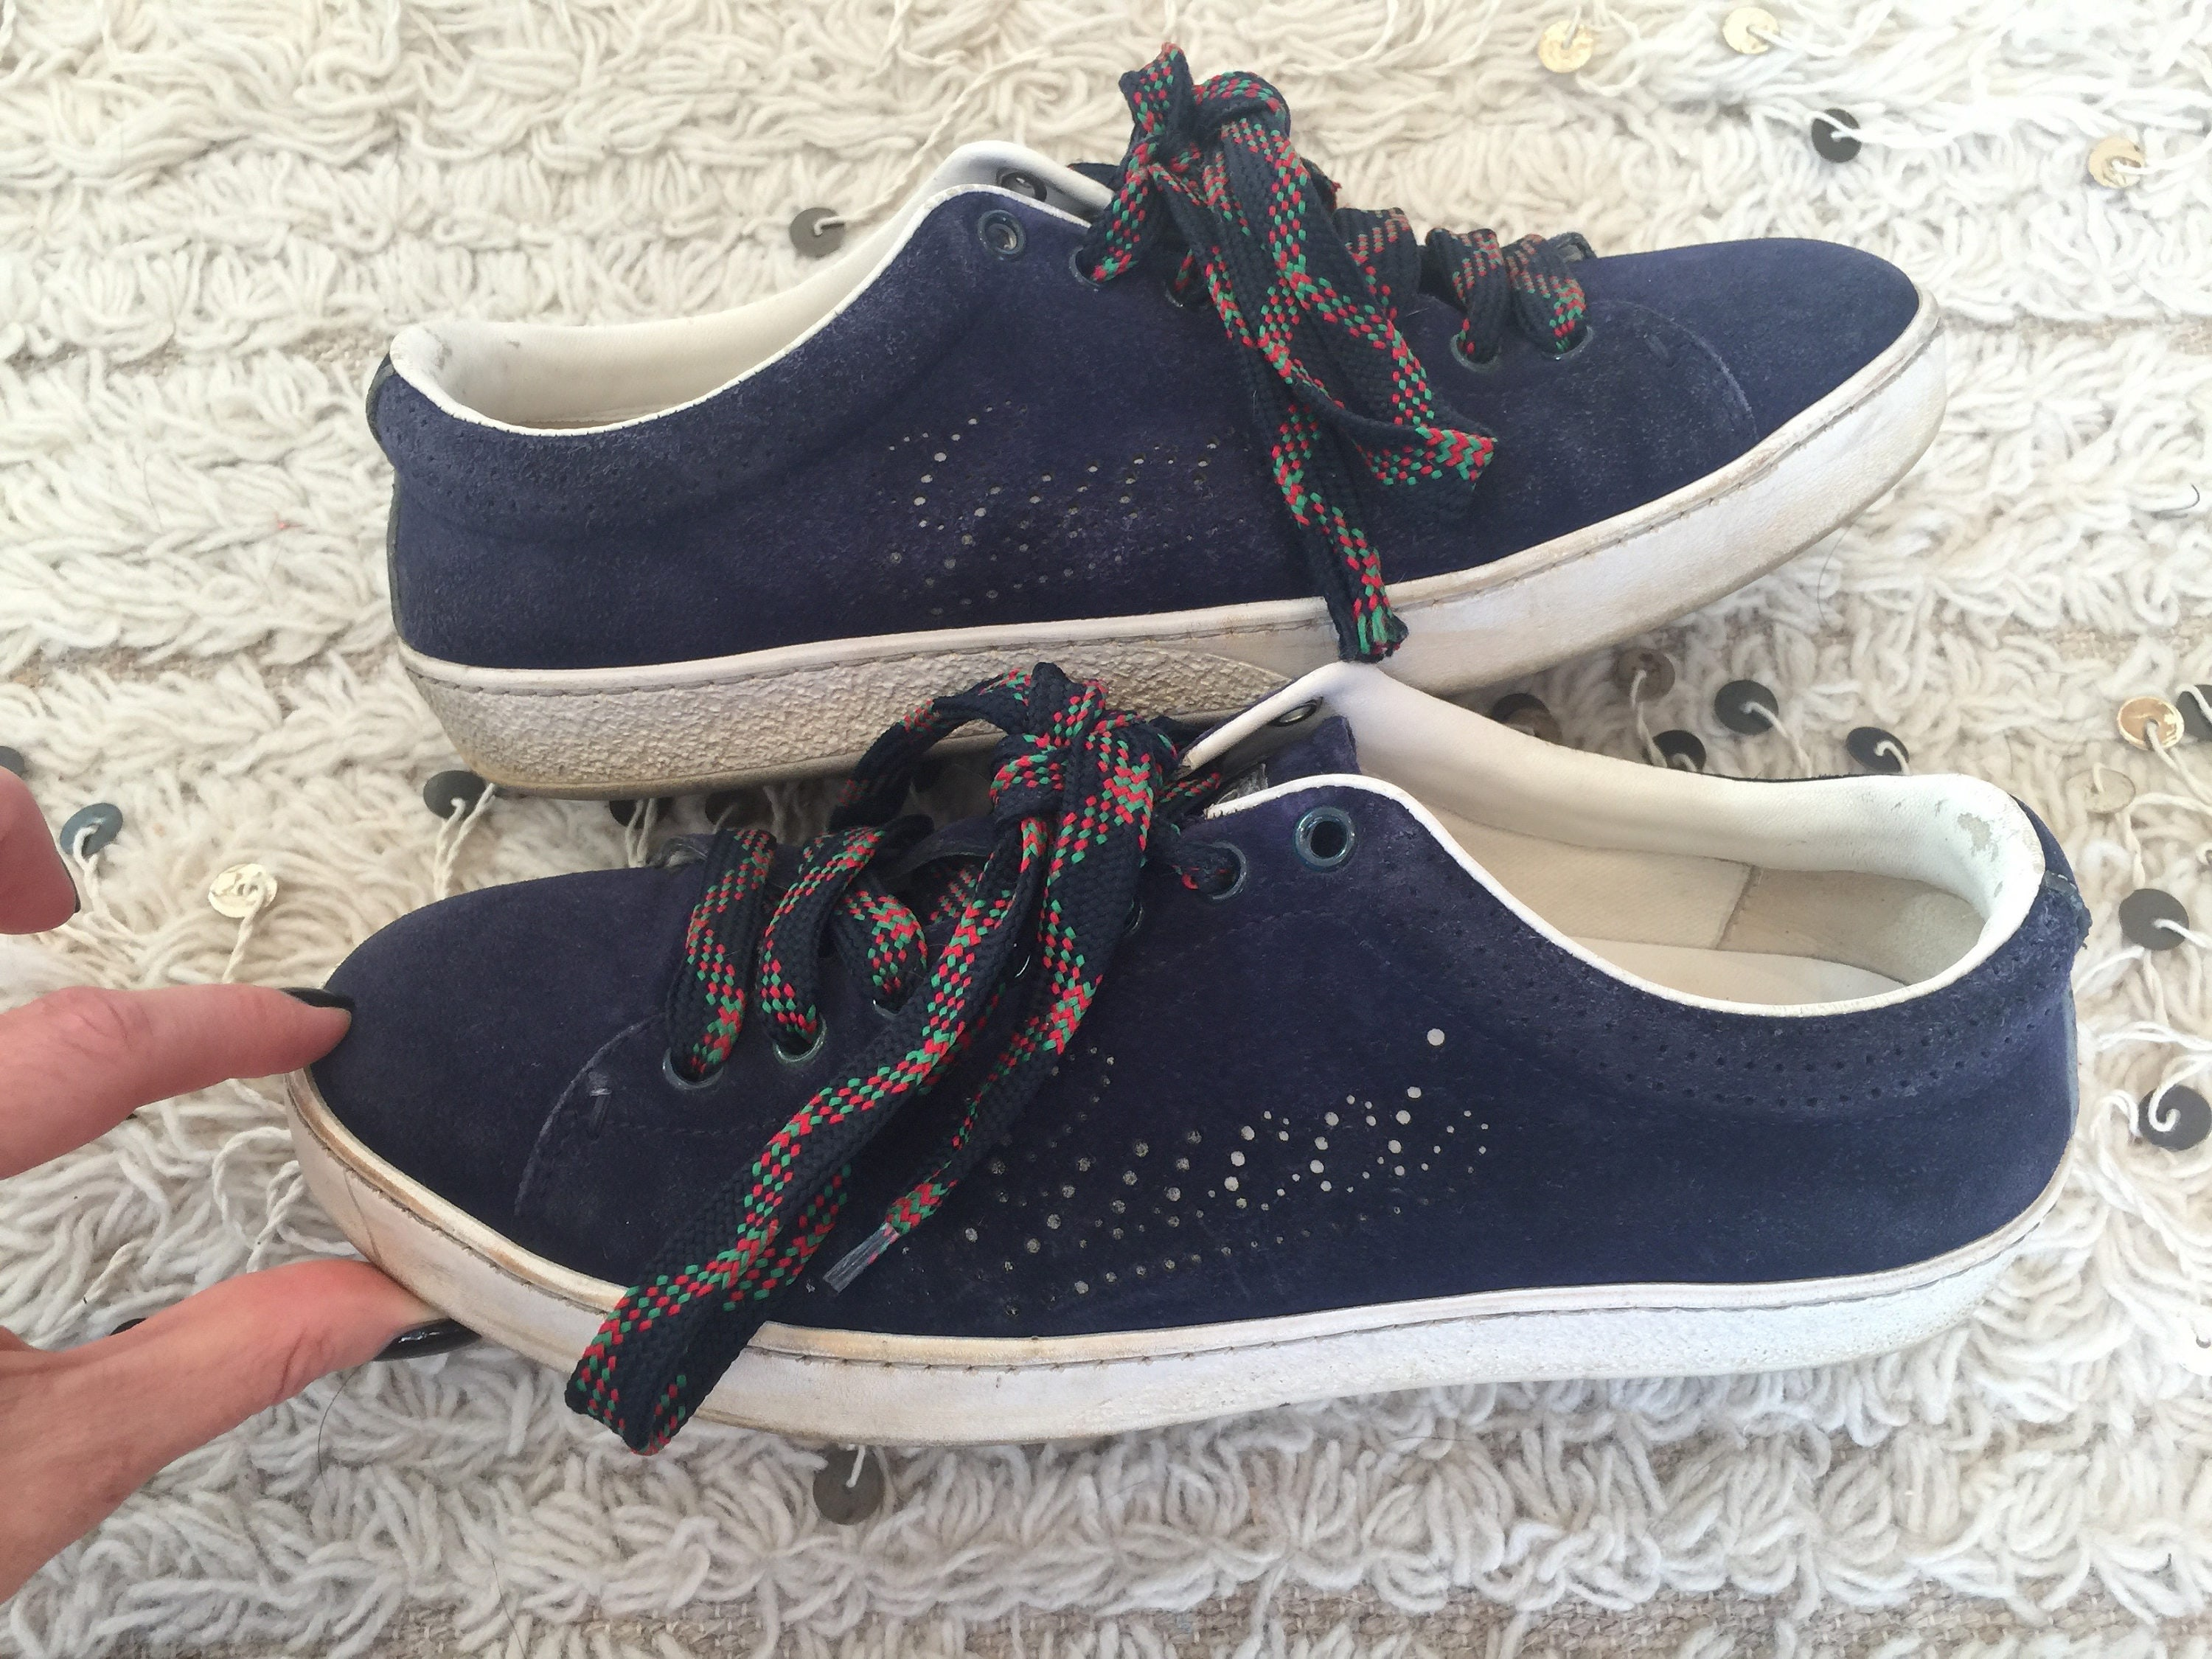 c78e5ae2c87 Vintage GUCCI Monogram Logo Webbing Lace Up Navy Suede Leather